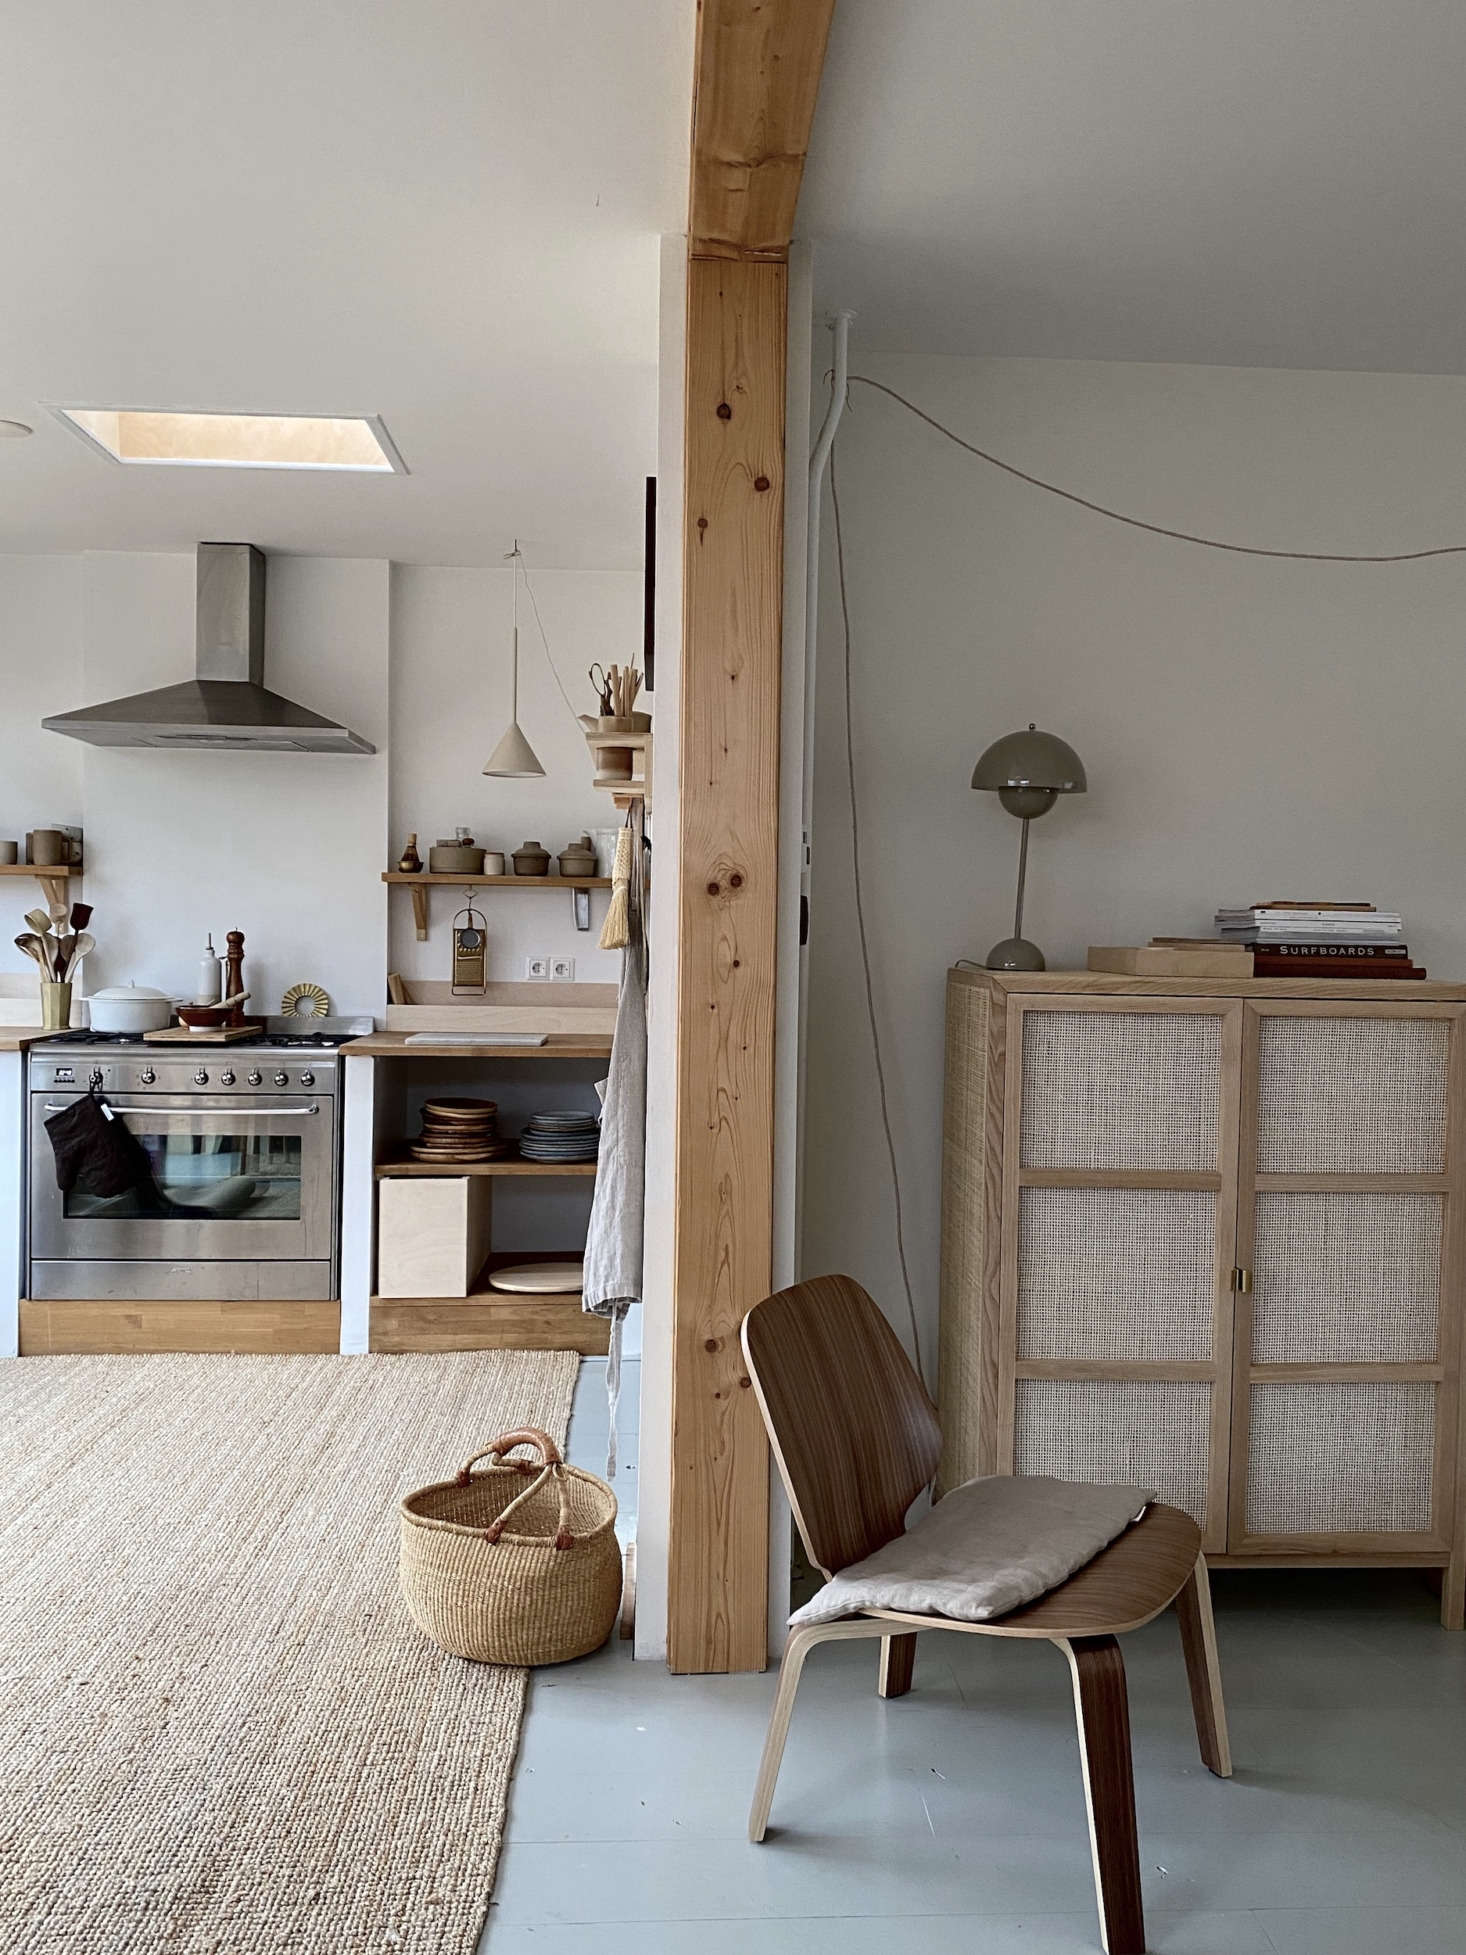 The kitchen is open to the dining area and living room (right). The Flowerpot Lamp is from &Tradition.